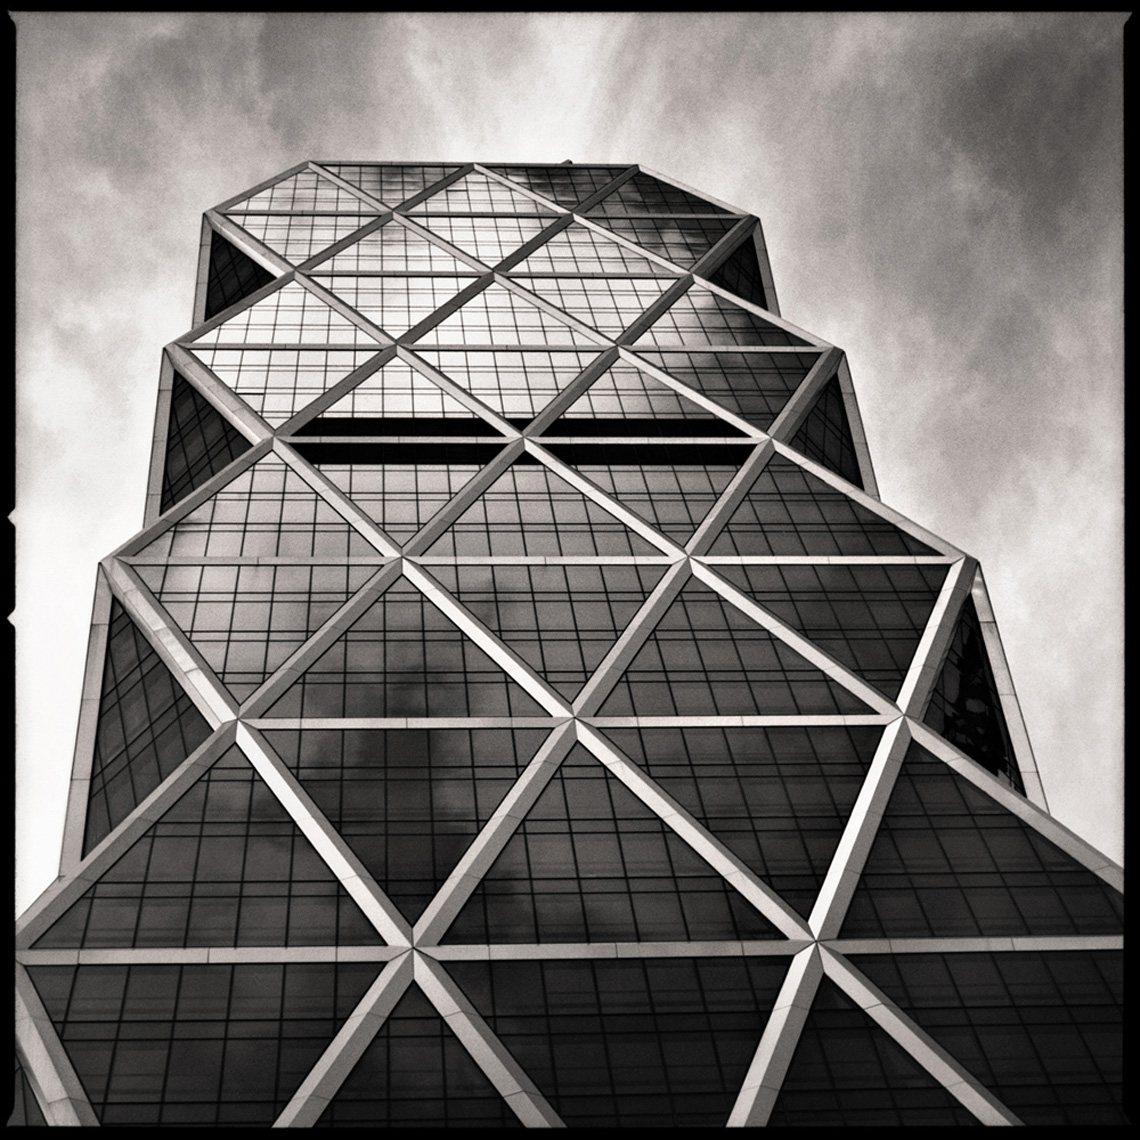 Sean Perry Photographs • Hearst Tower, from the series Monolith